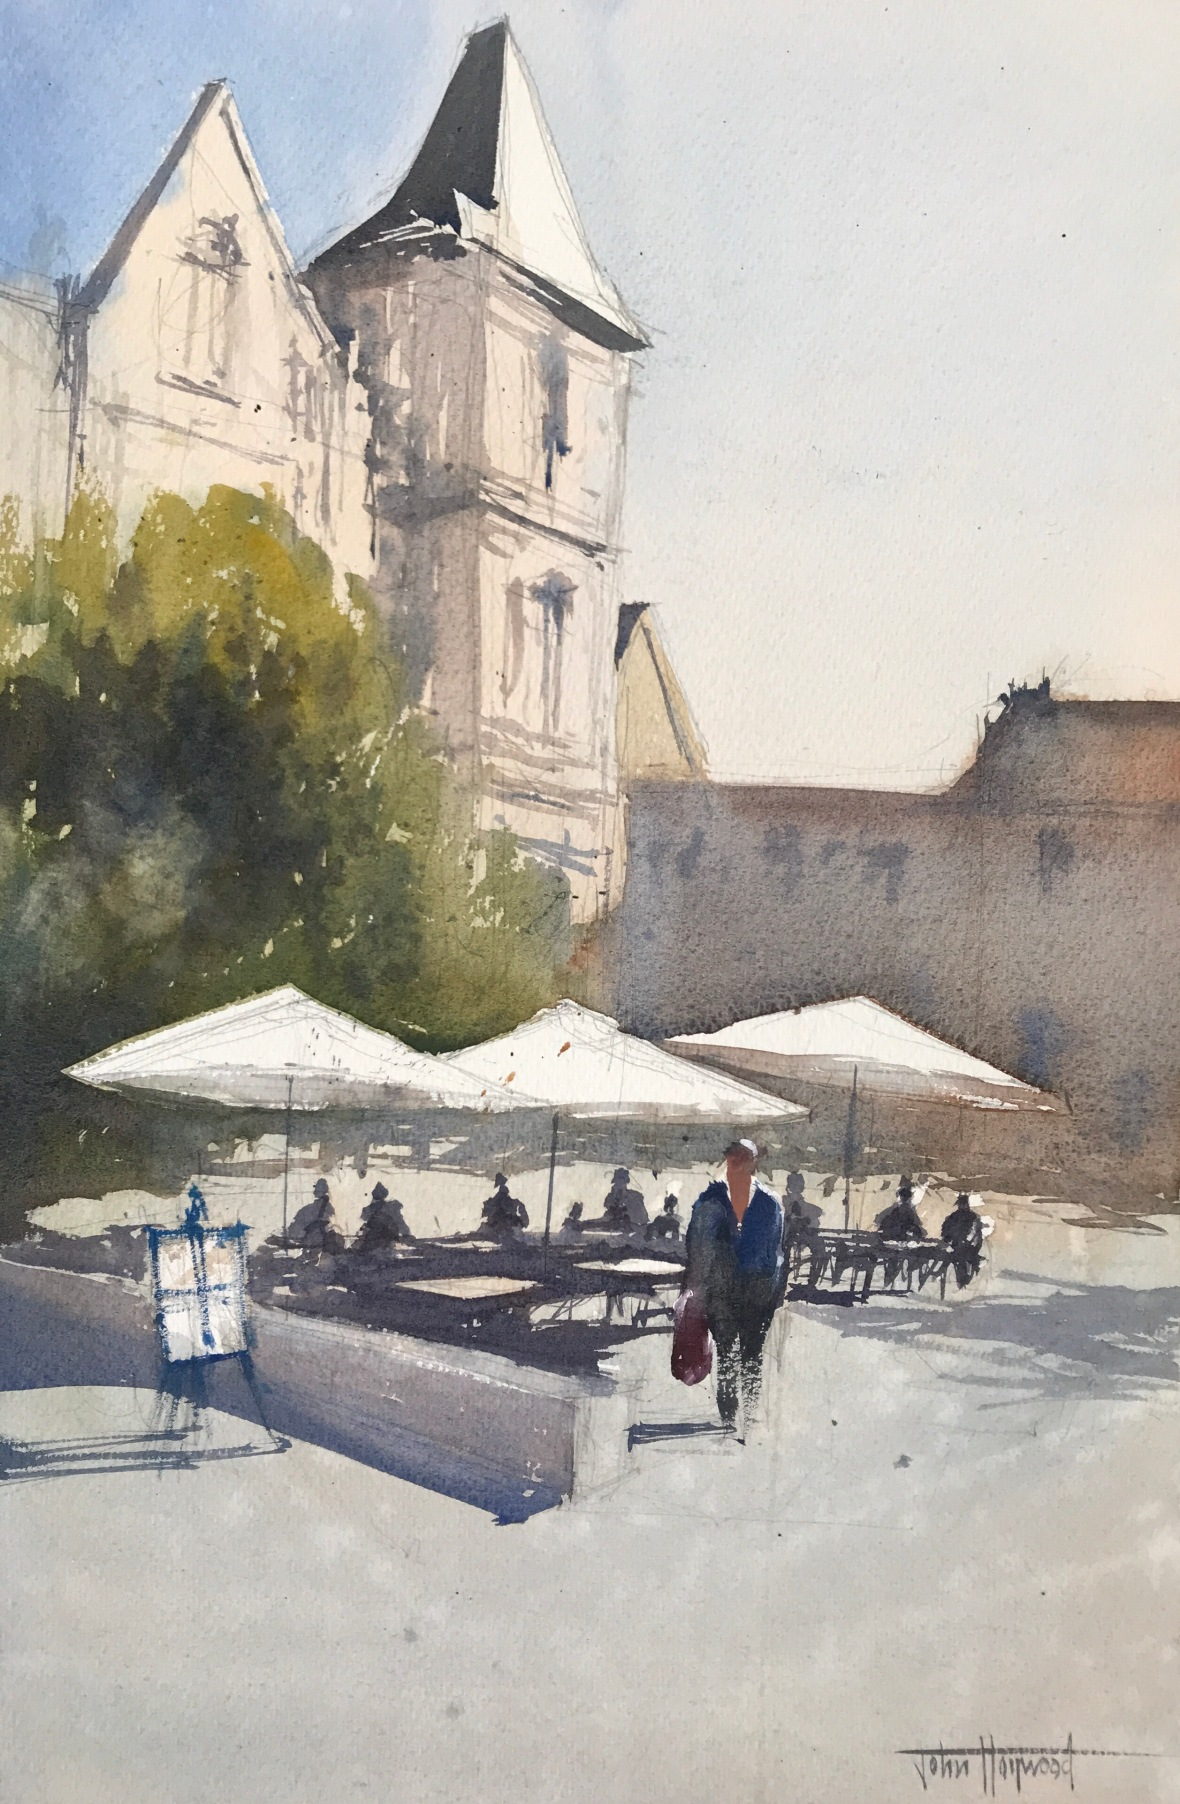 A watercolour painting by John Haywood